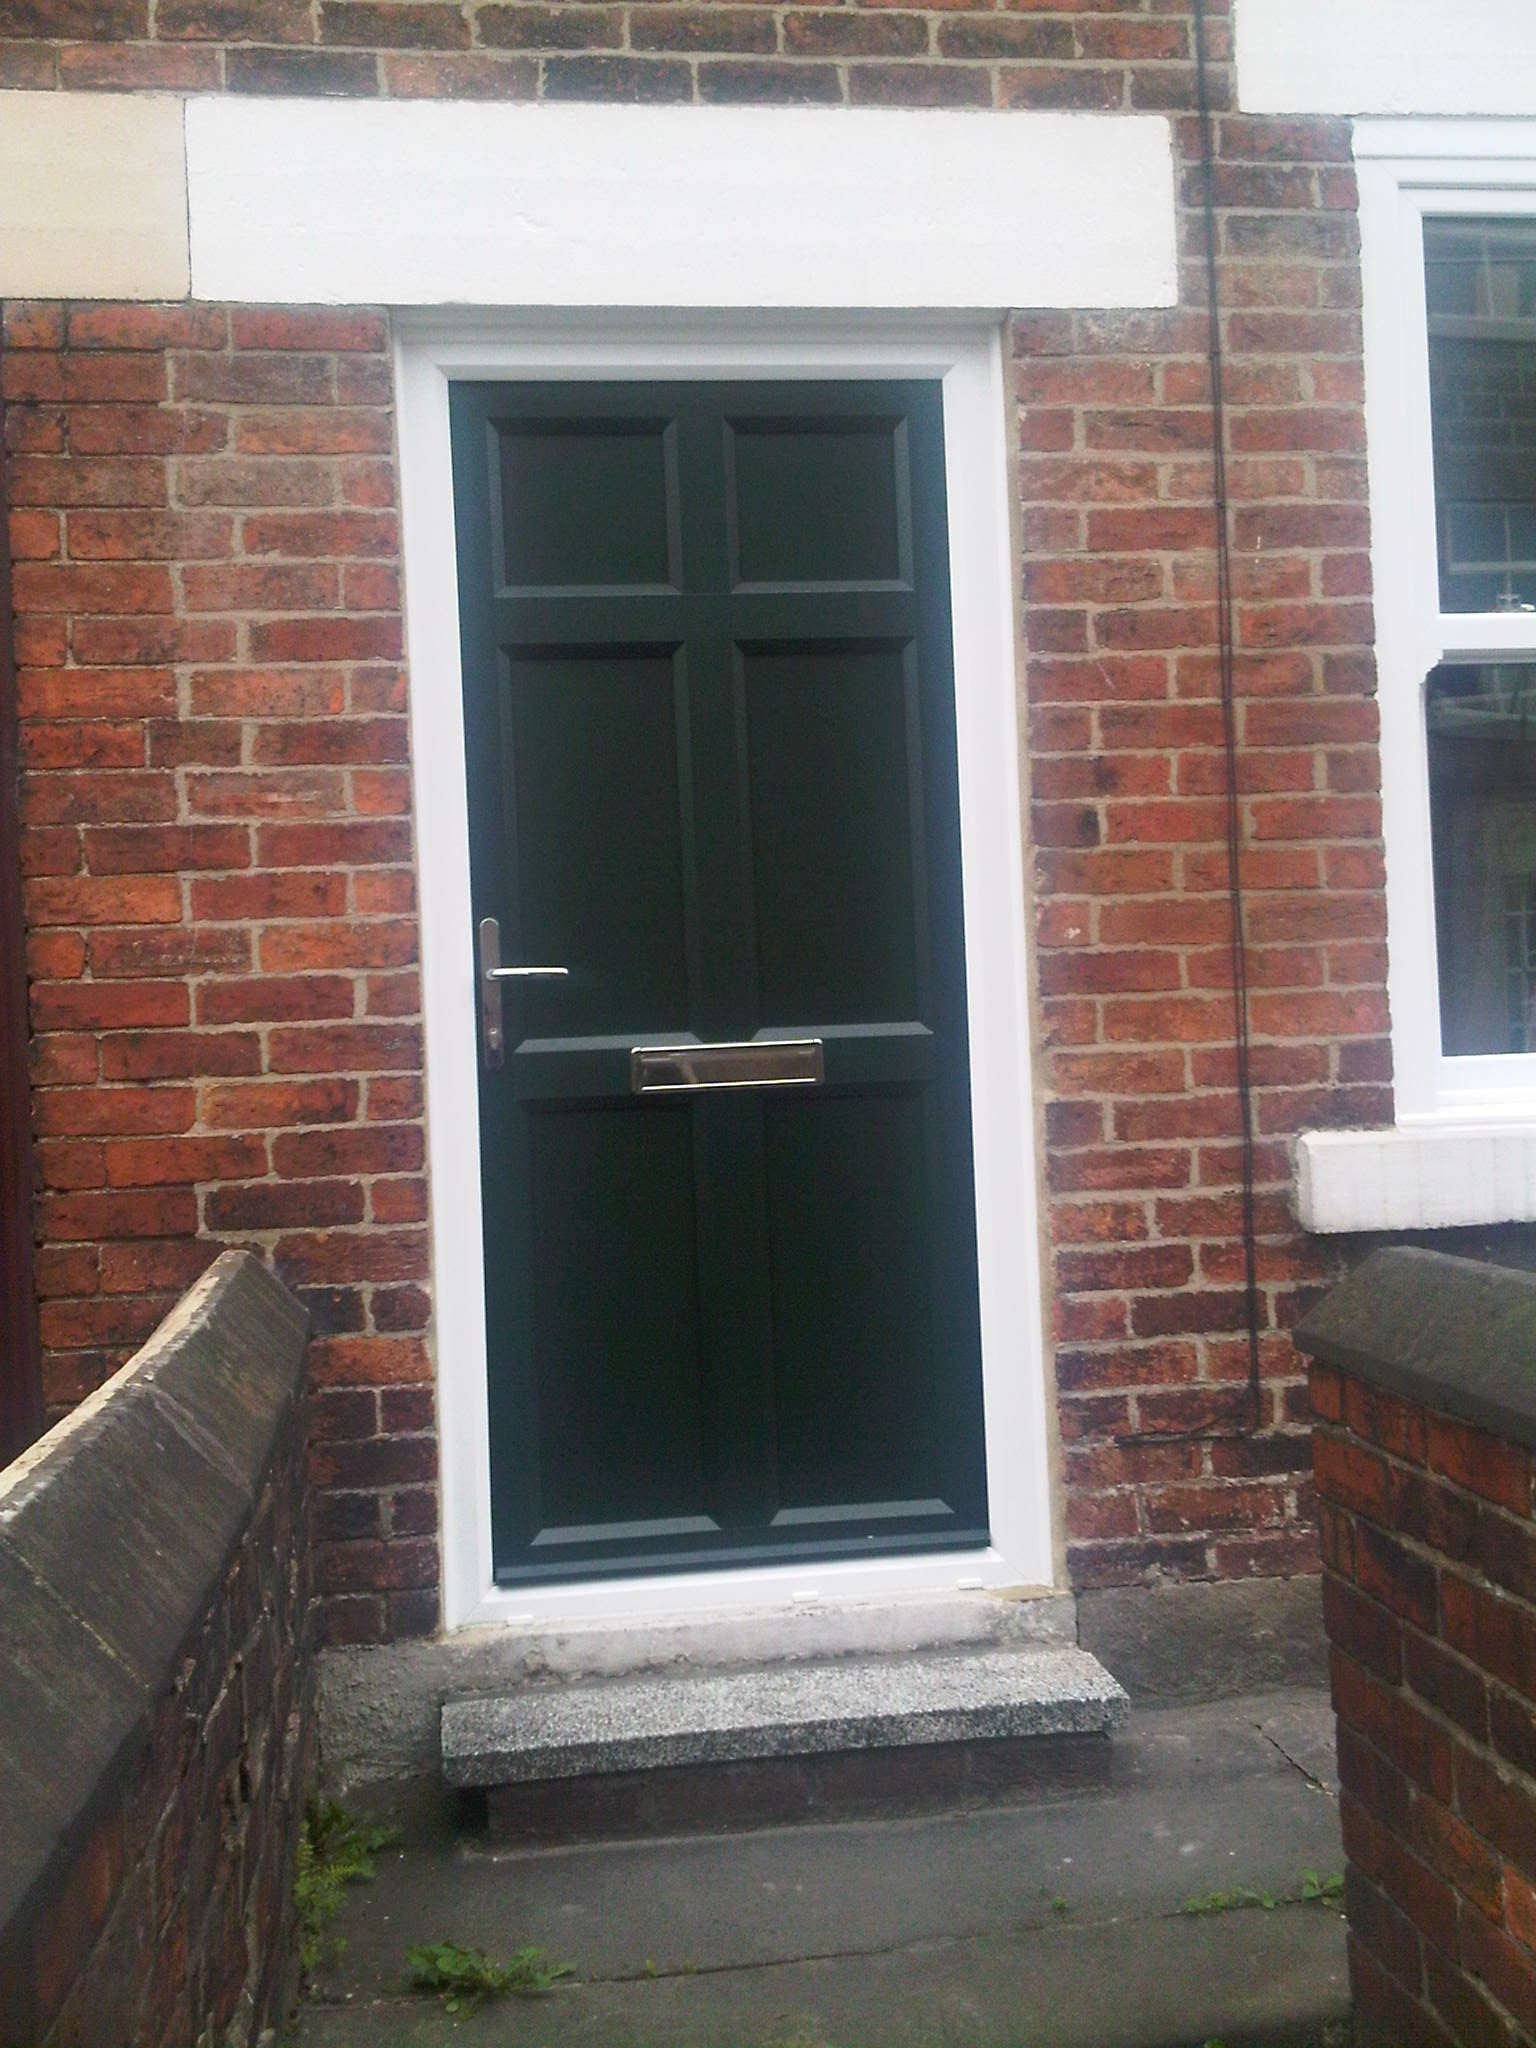 Full Panel Entrance Door In Green Upvc Making An Entrance